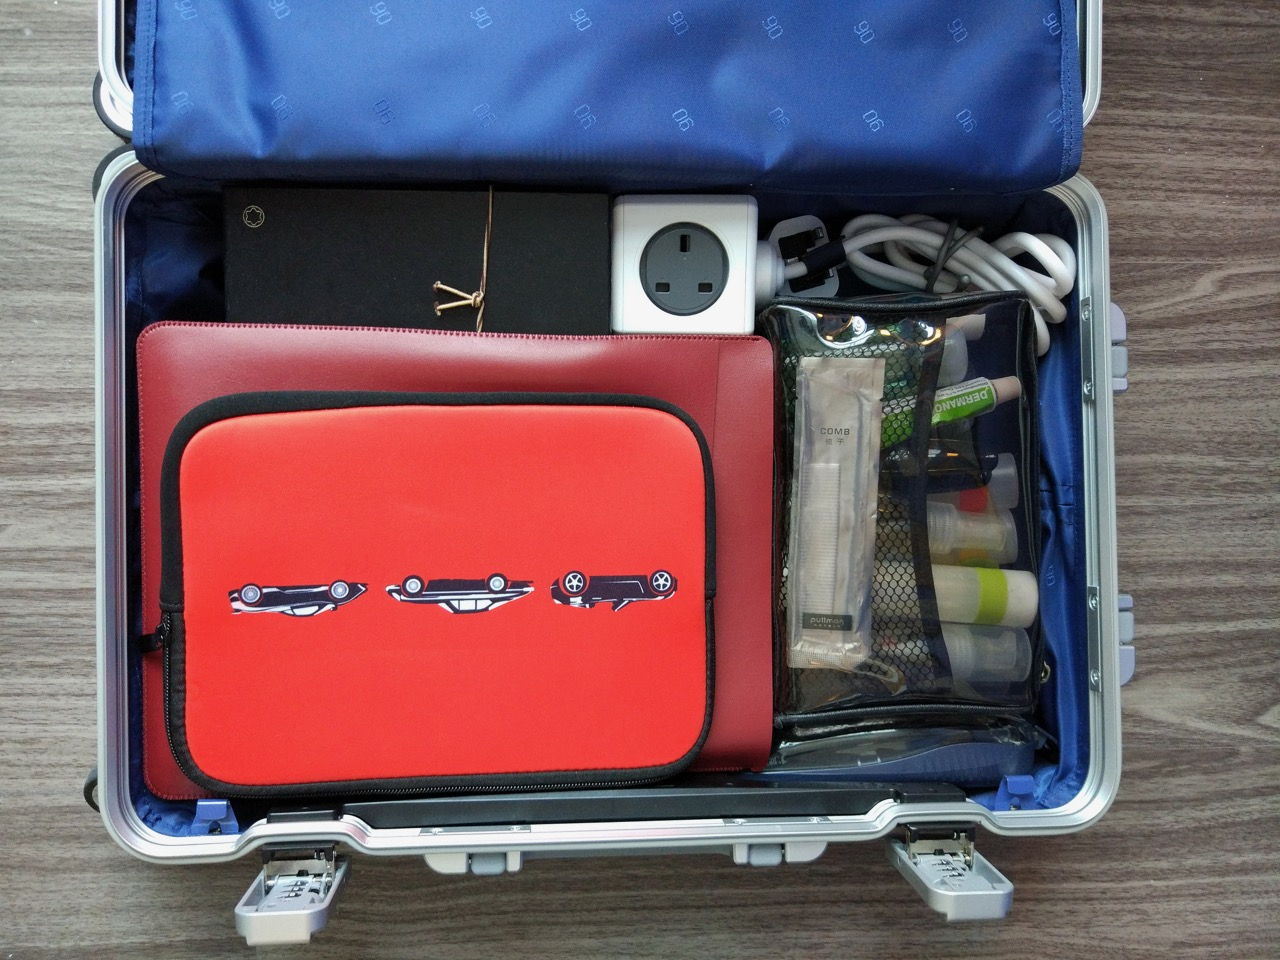 xiaomi-mi-90-smart-metal-luggage-suitcase-packed-left-compartment